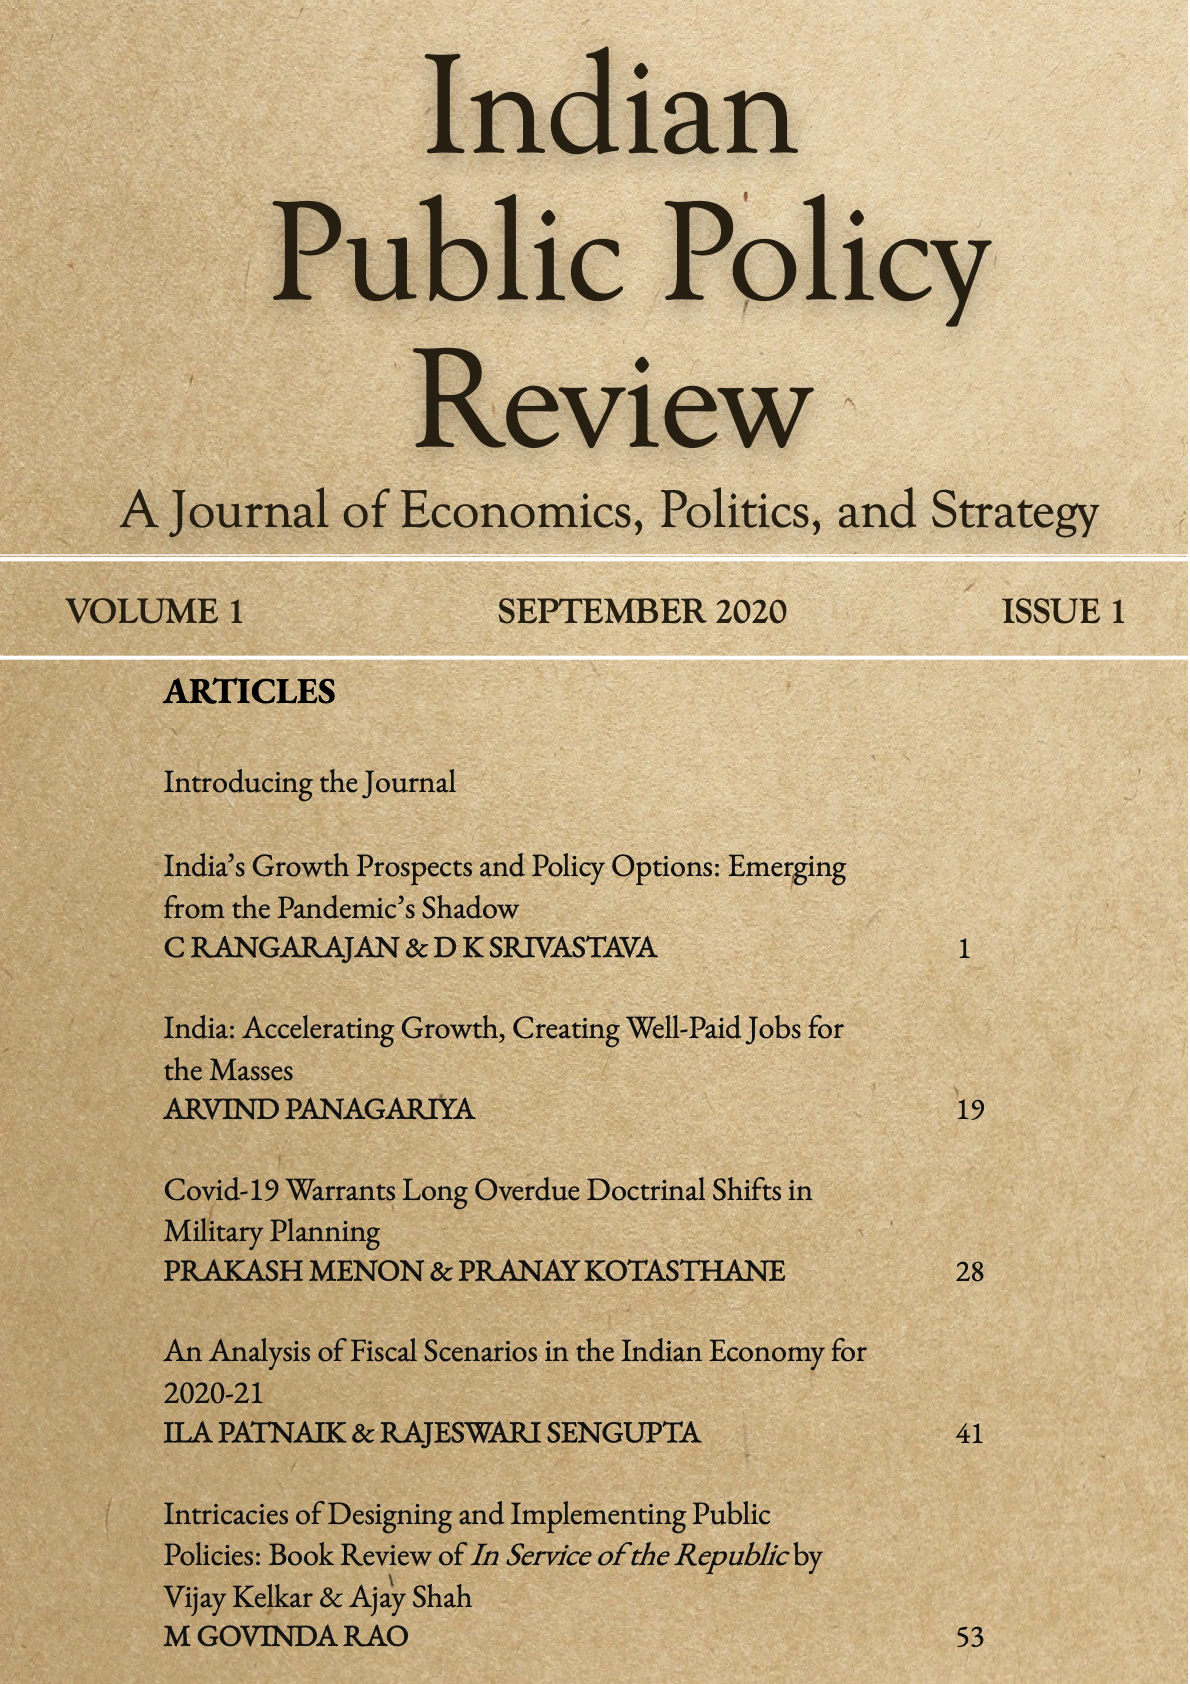 Cover page of IPPR Vol1 Issue1